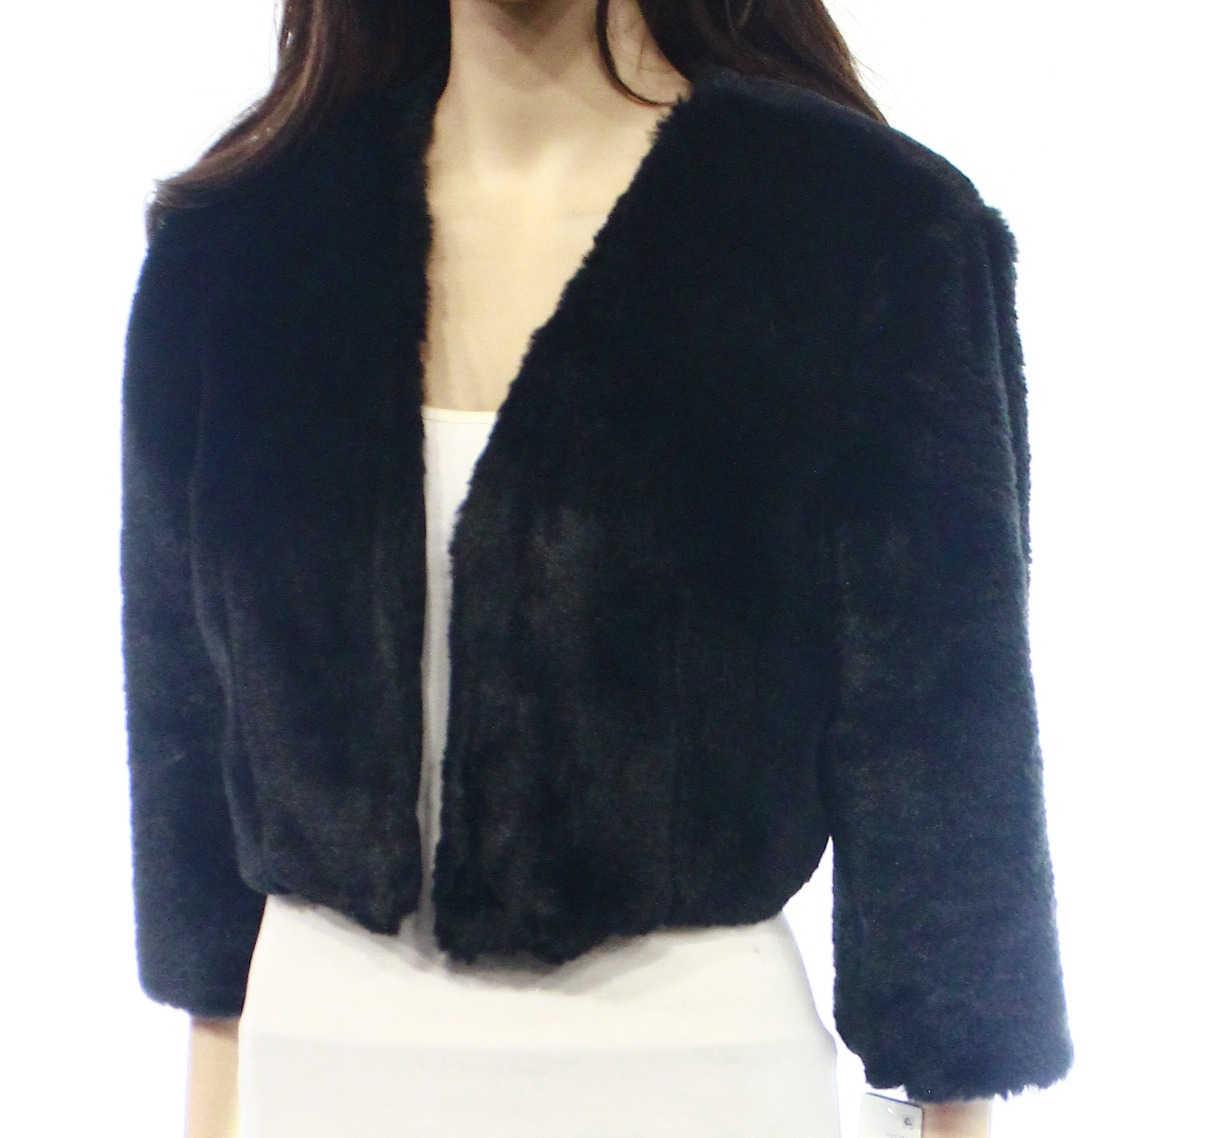 SLNY NEW Black Faux-Fur Cropped Jacket Women's Large L Bolero Shrug